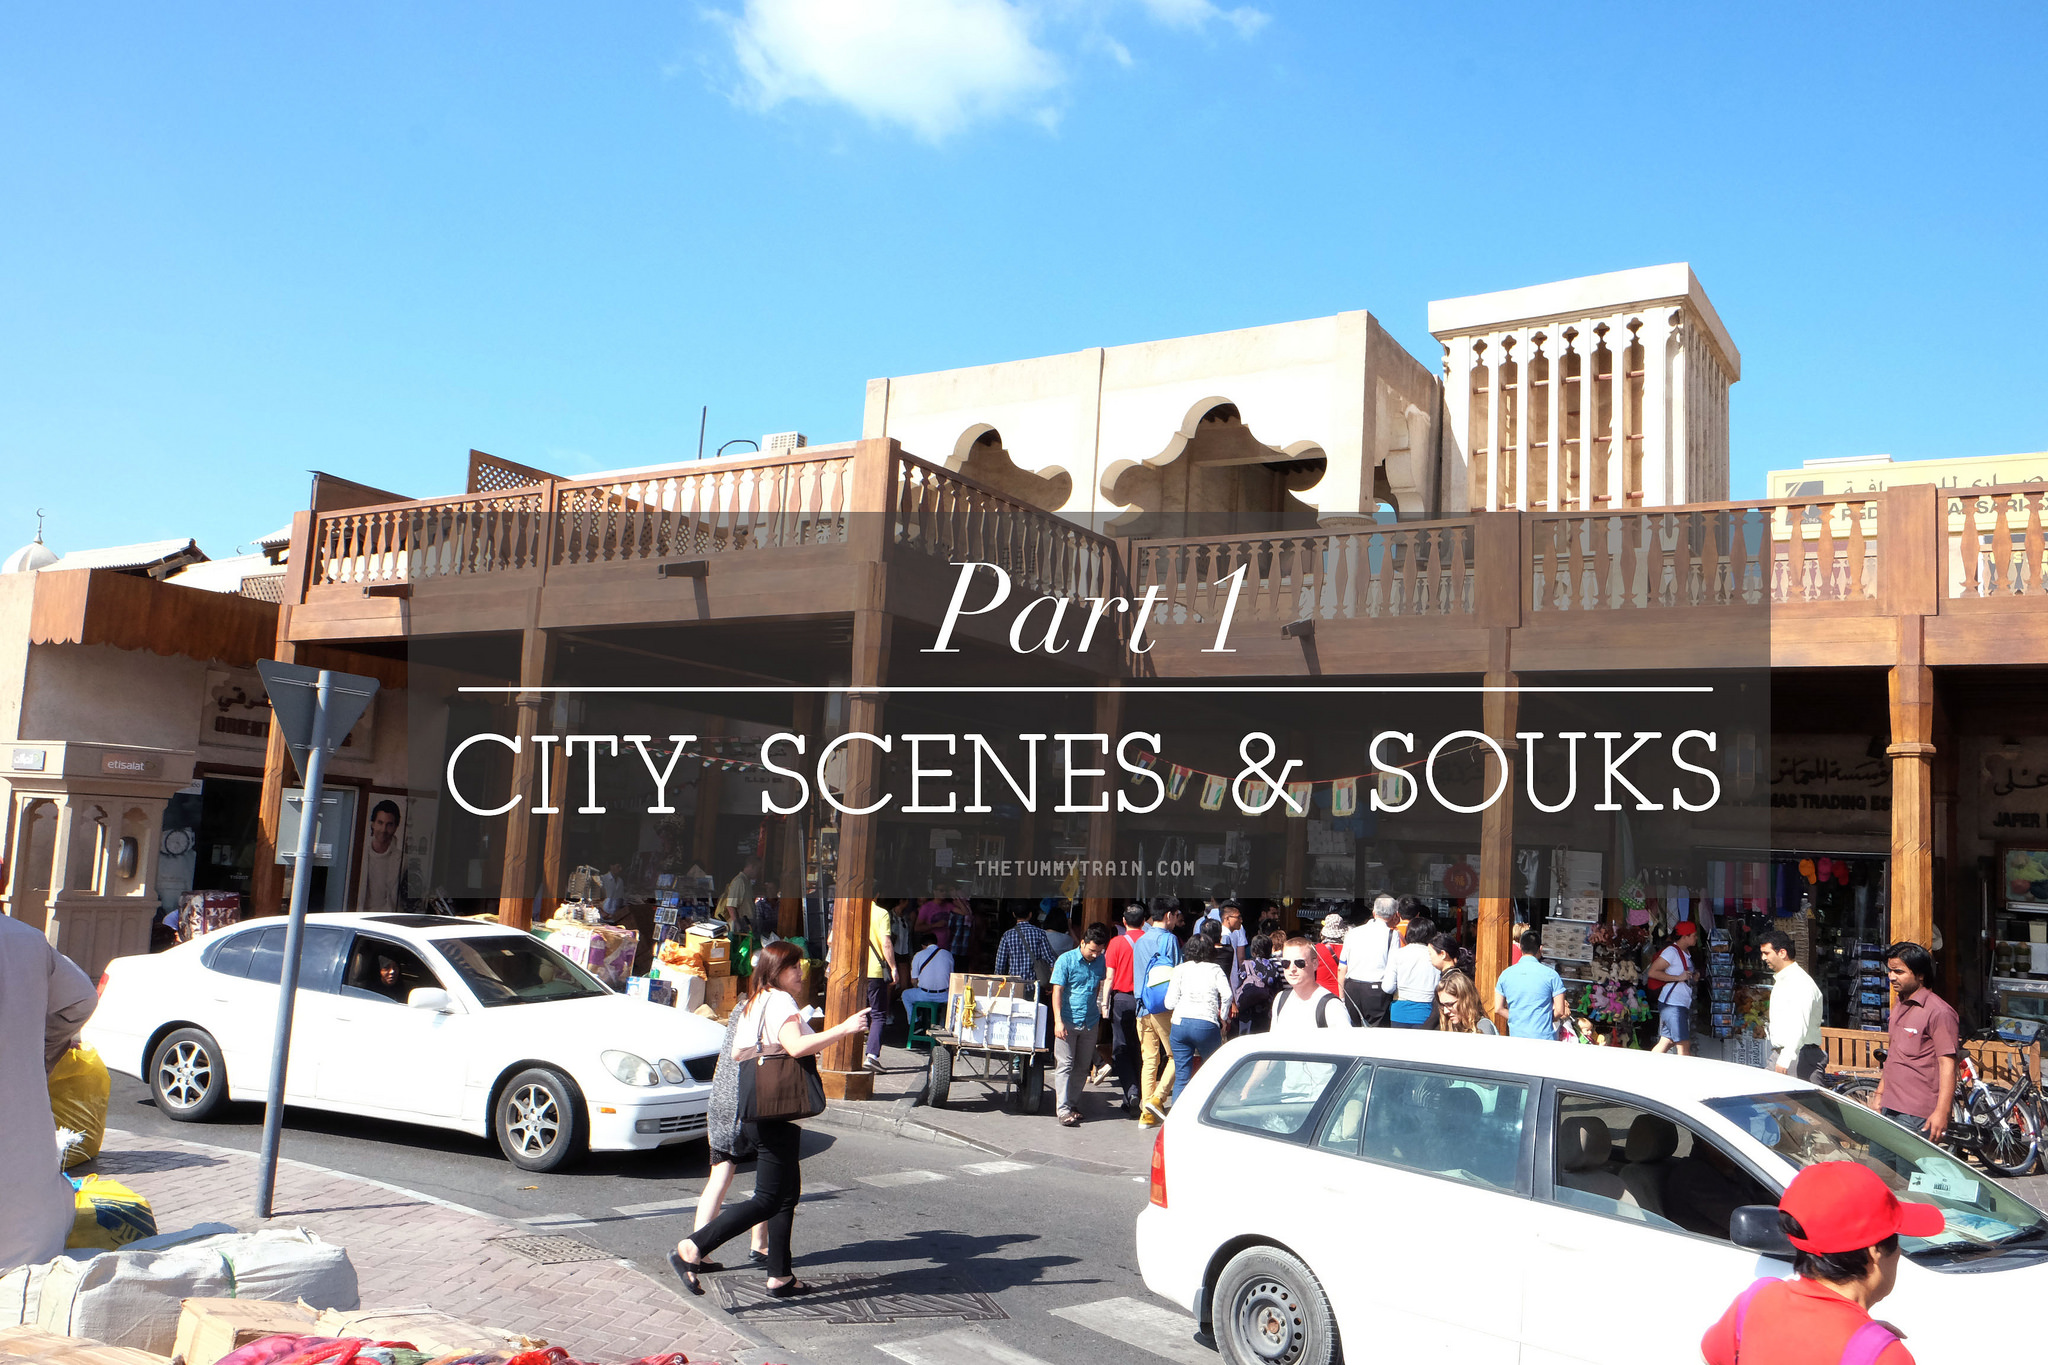 16464124337 37800ee8ee b 1 - {Dubai 2014} Exploring the city + Souks of Dubai